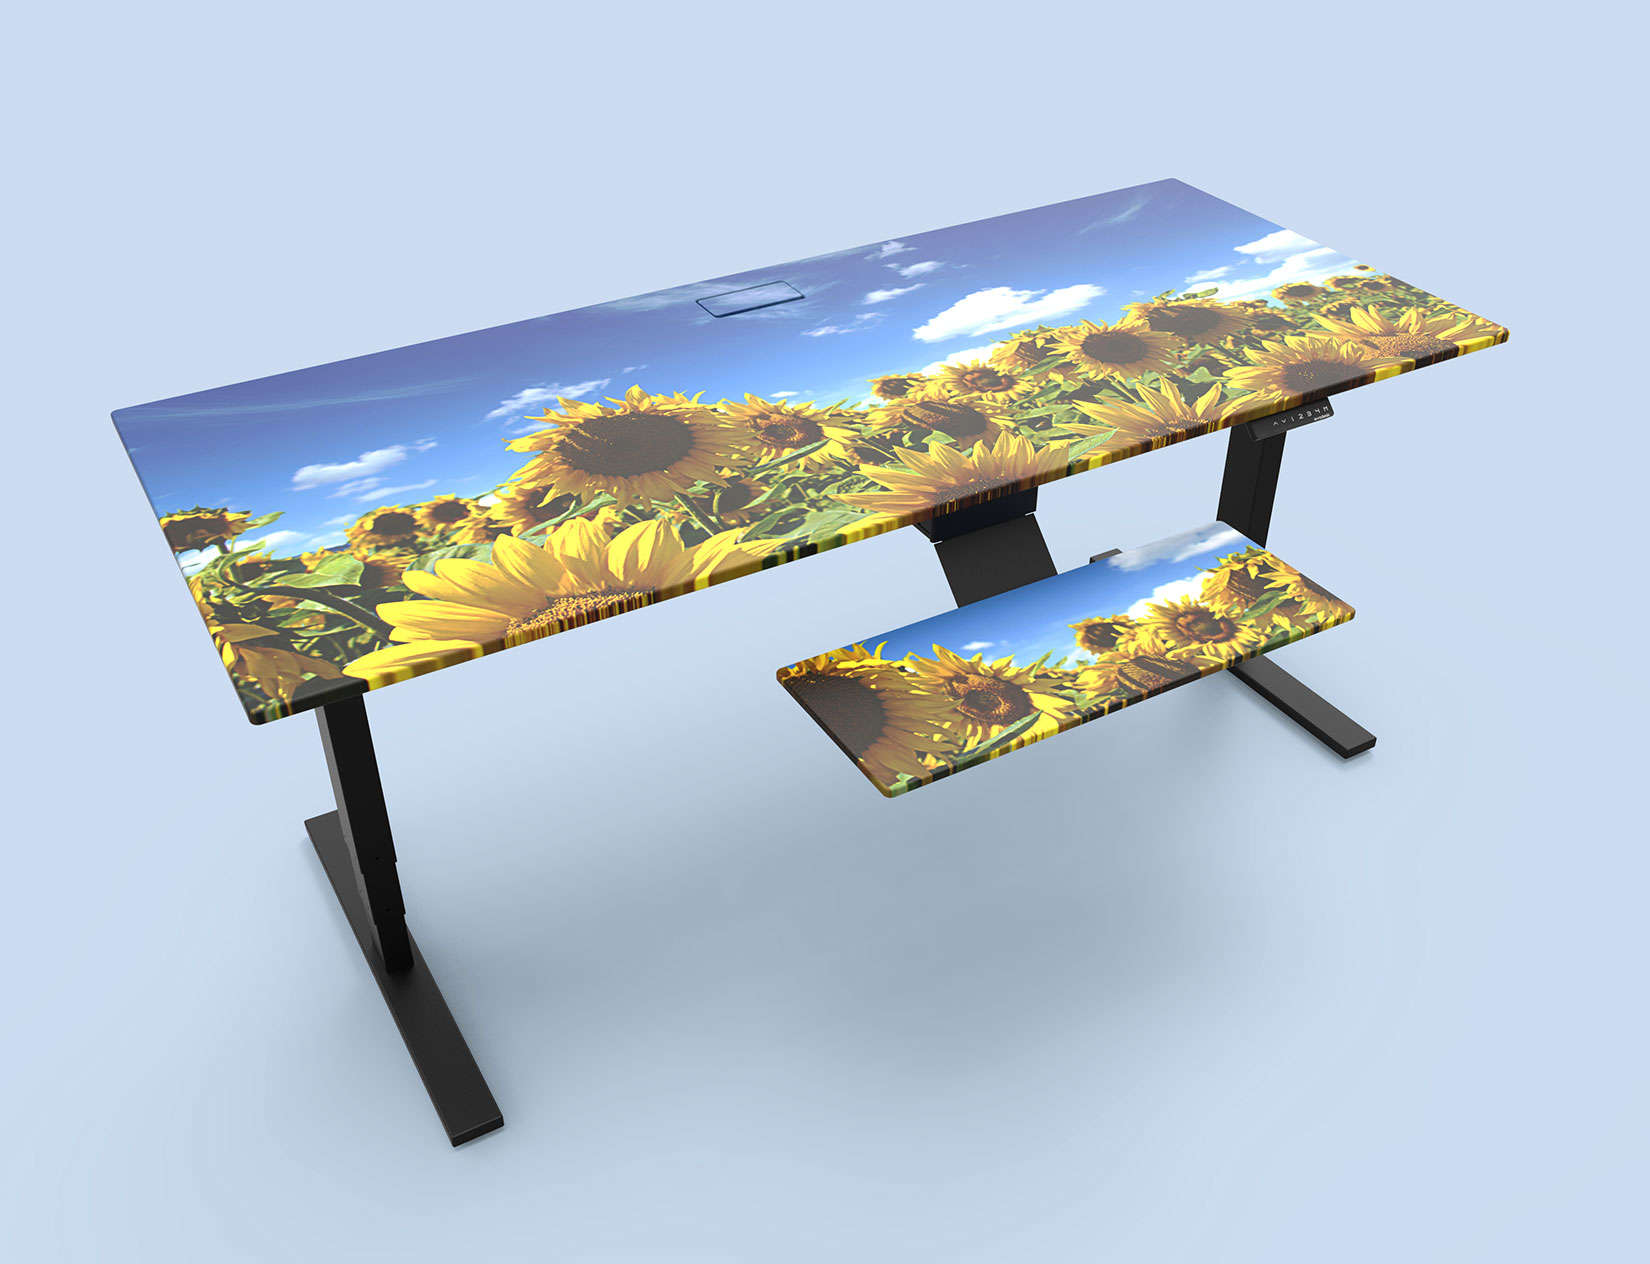 This standing desk cover will make you feel like you are working in a field of sunflowers.